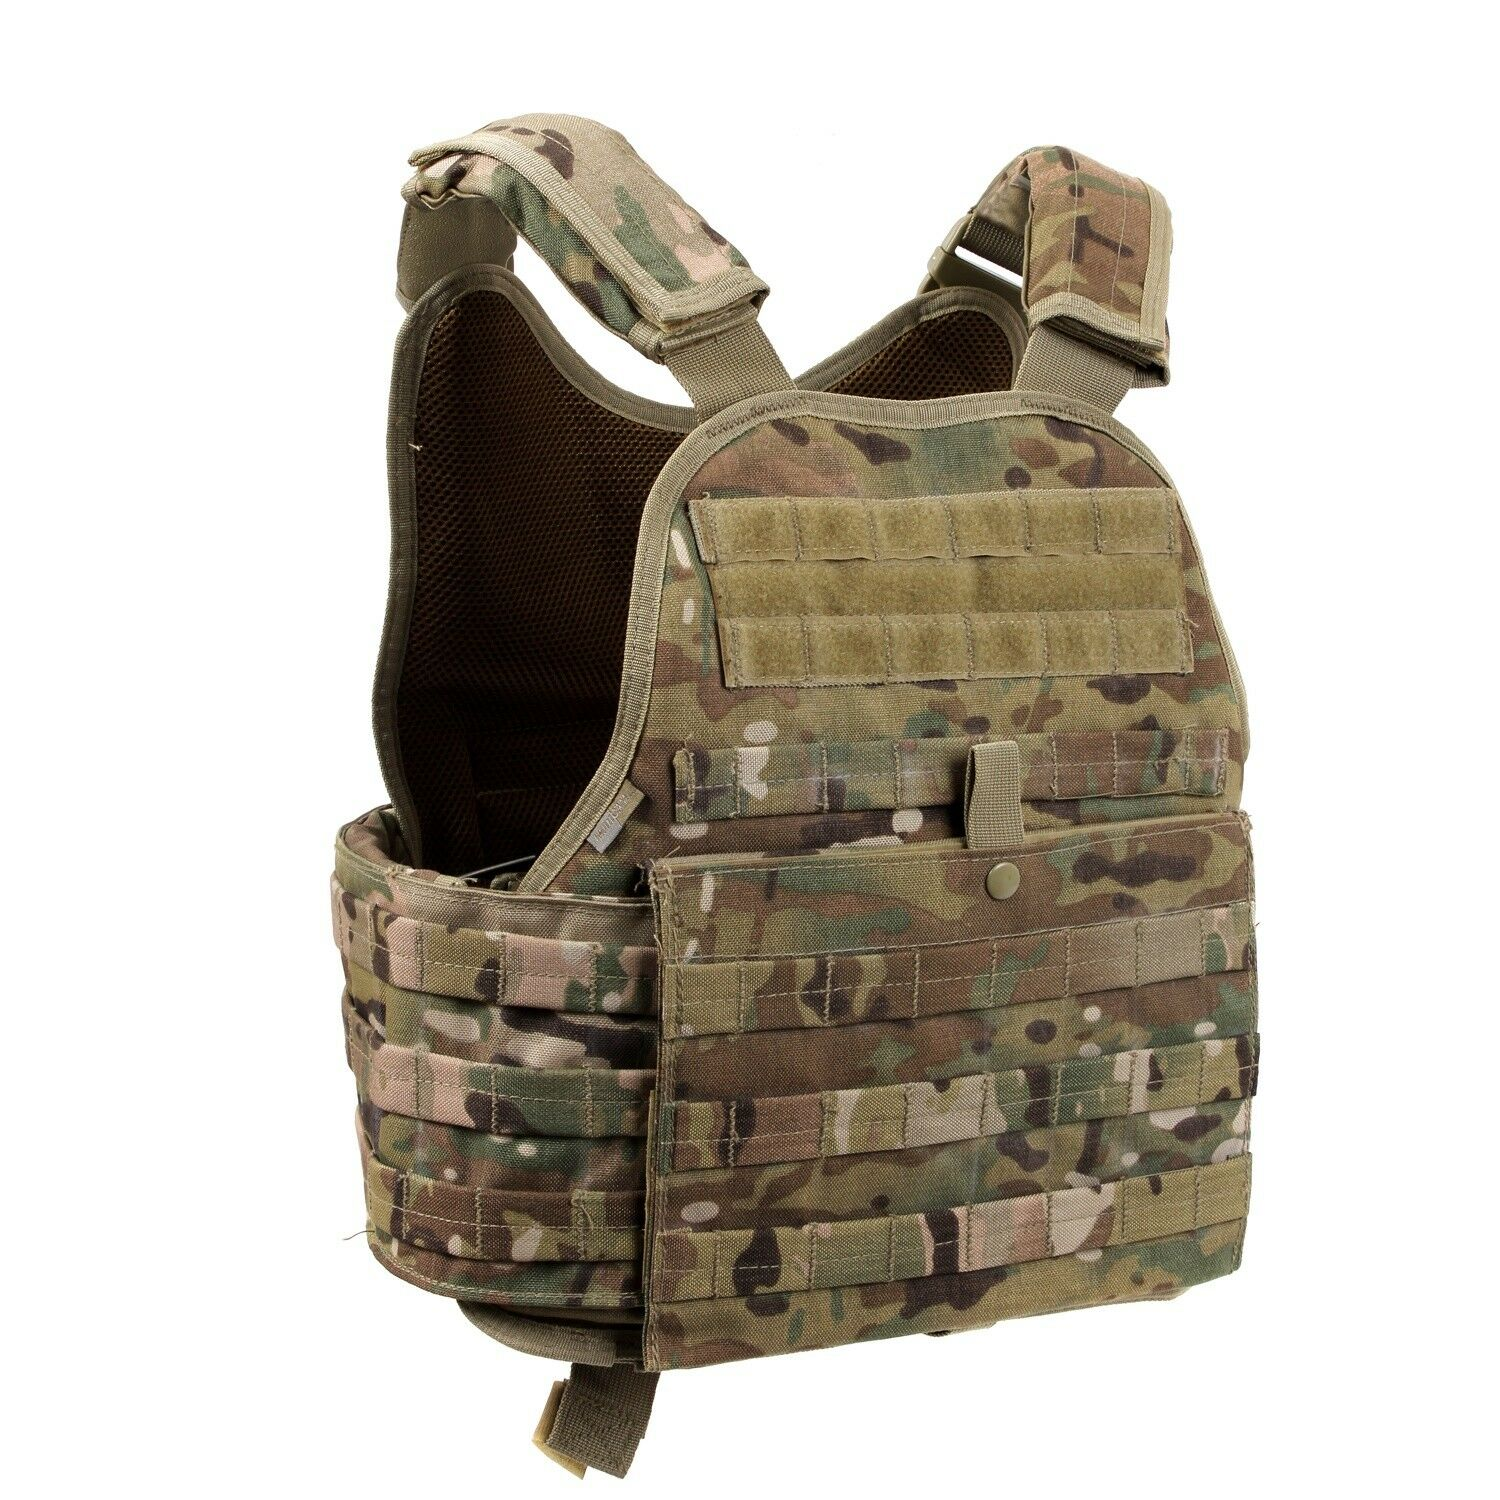 OverGrößed Multi Camo Military MOLLE Tactical Plate Carrier Assault Vest 1924